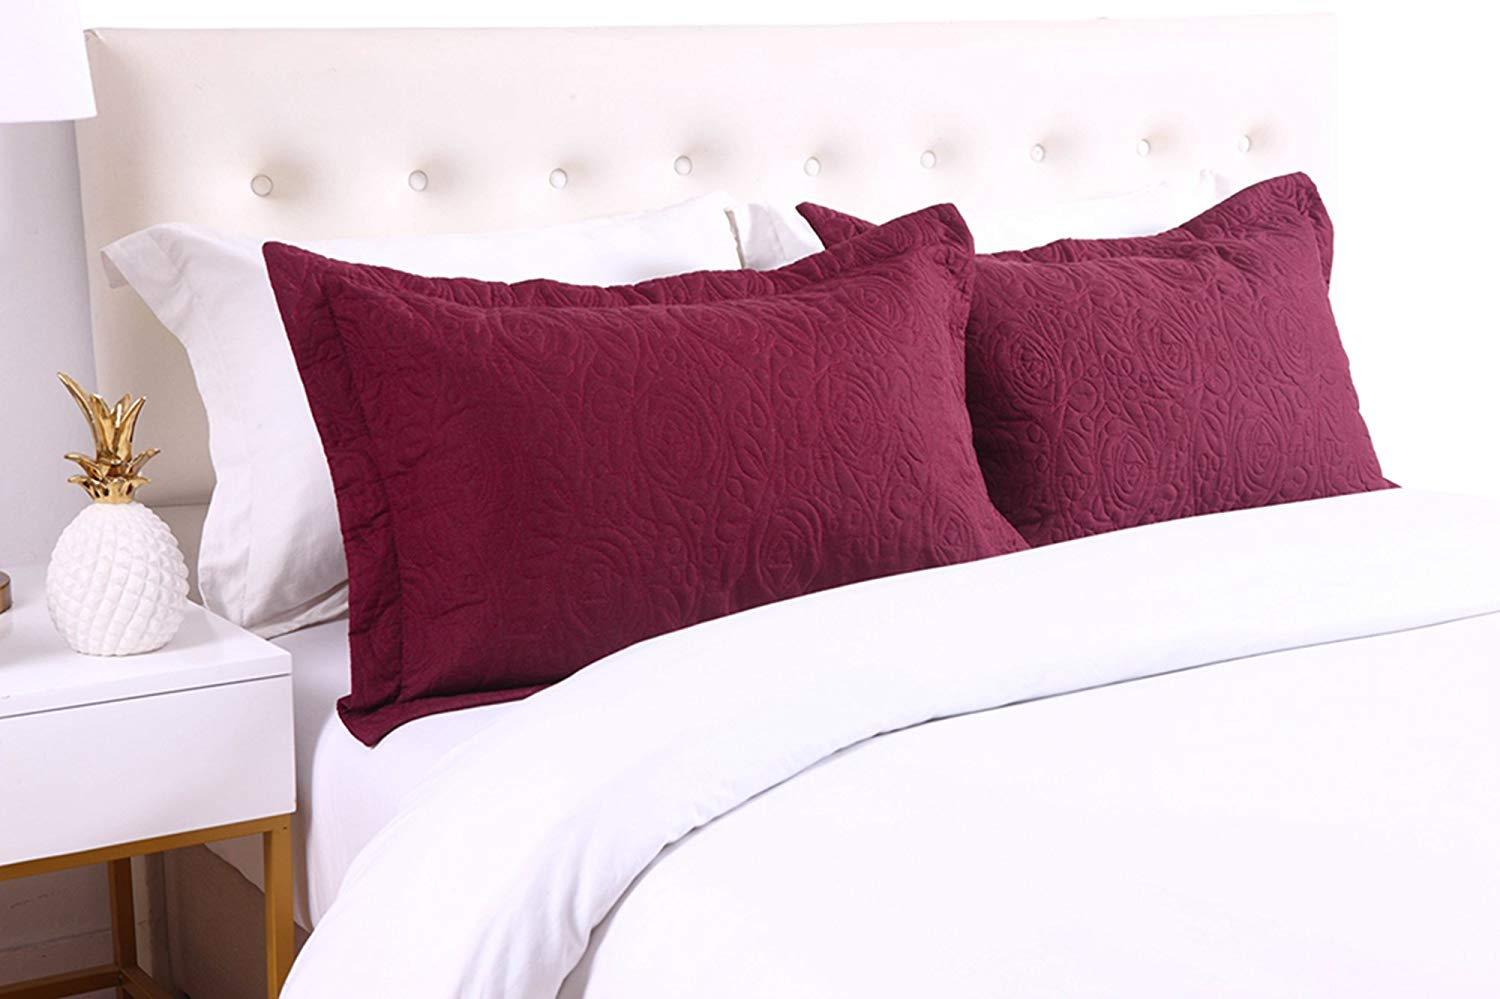 MarCielo 2-Piece Embroidered Pillow Shams, Decorative